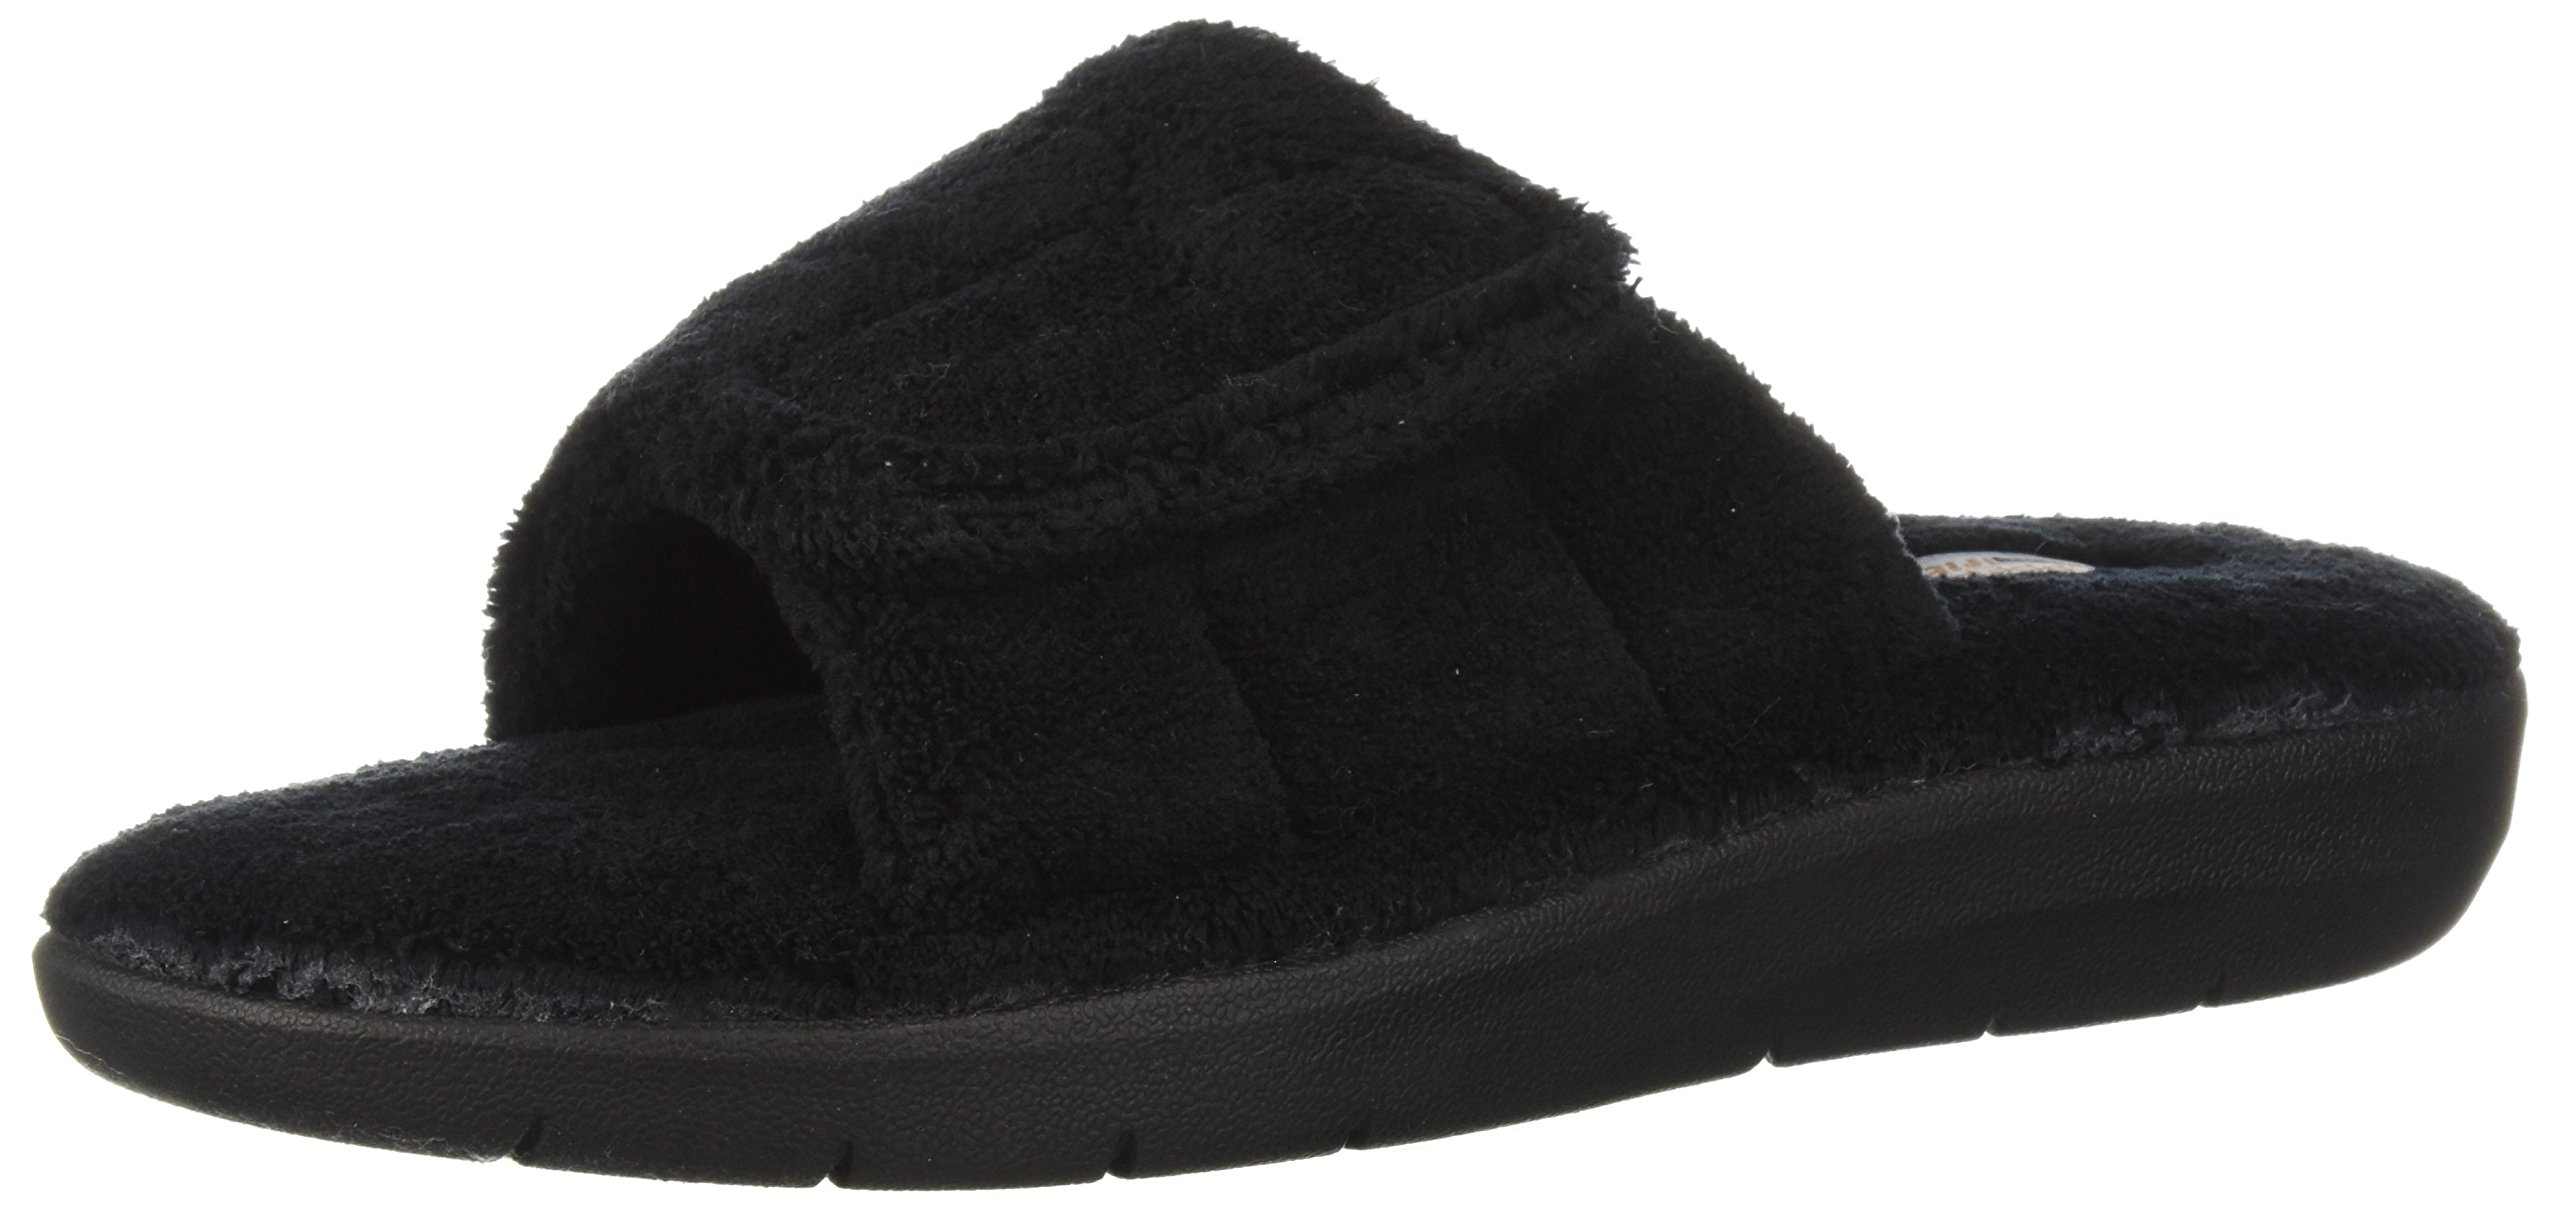 Copper Fit Women's Cozy Slide Slipper, Black, M M US